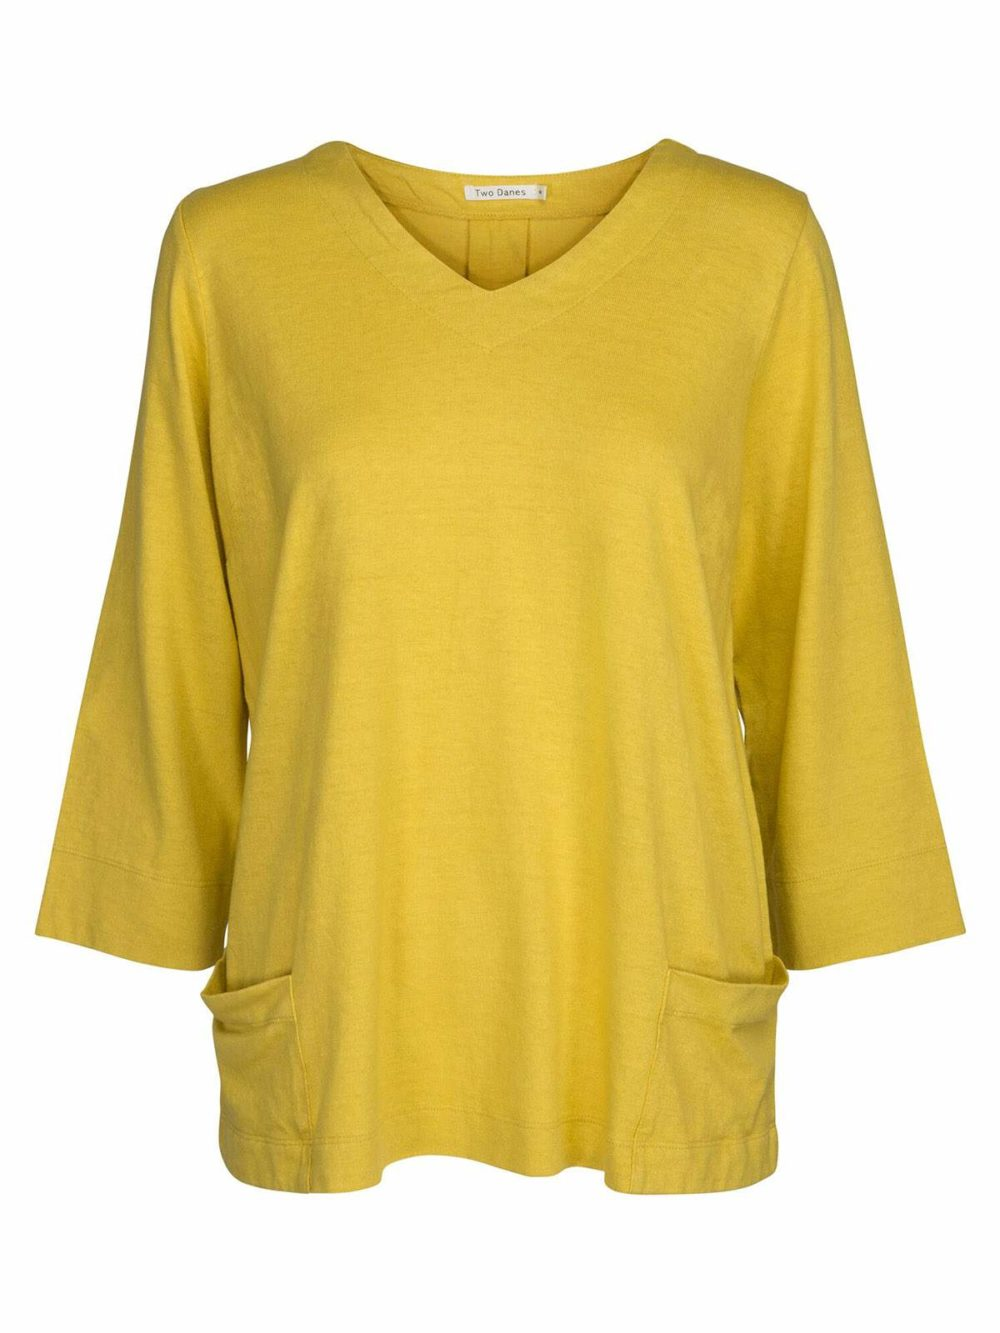 Haiam T-Shirt Two Danes Katie Kerr Women's Clothing